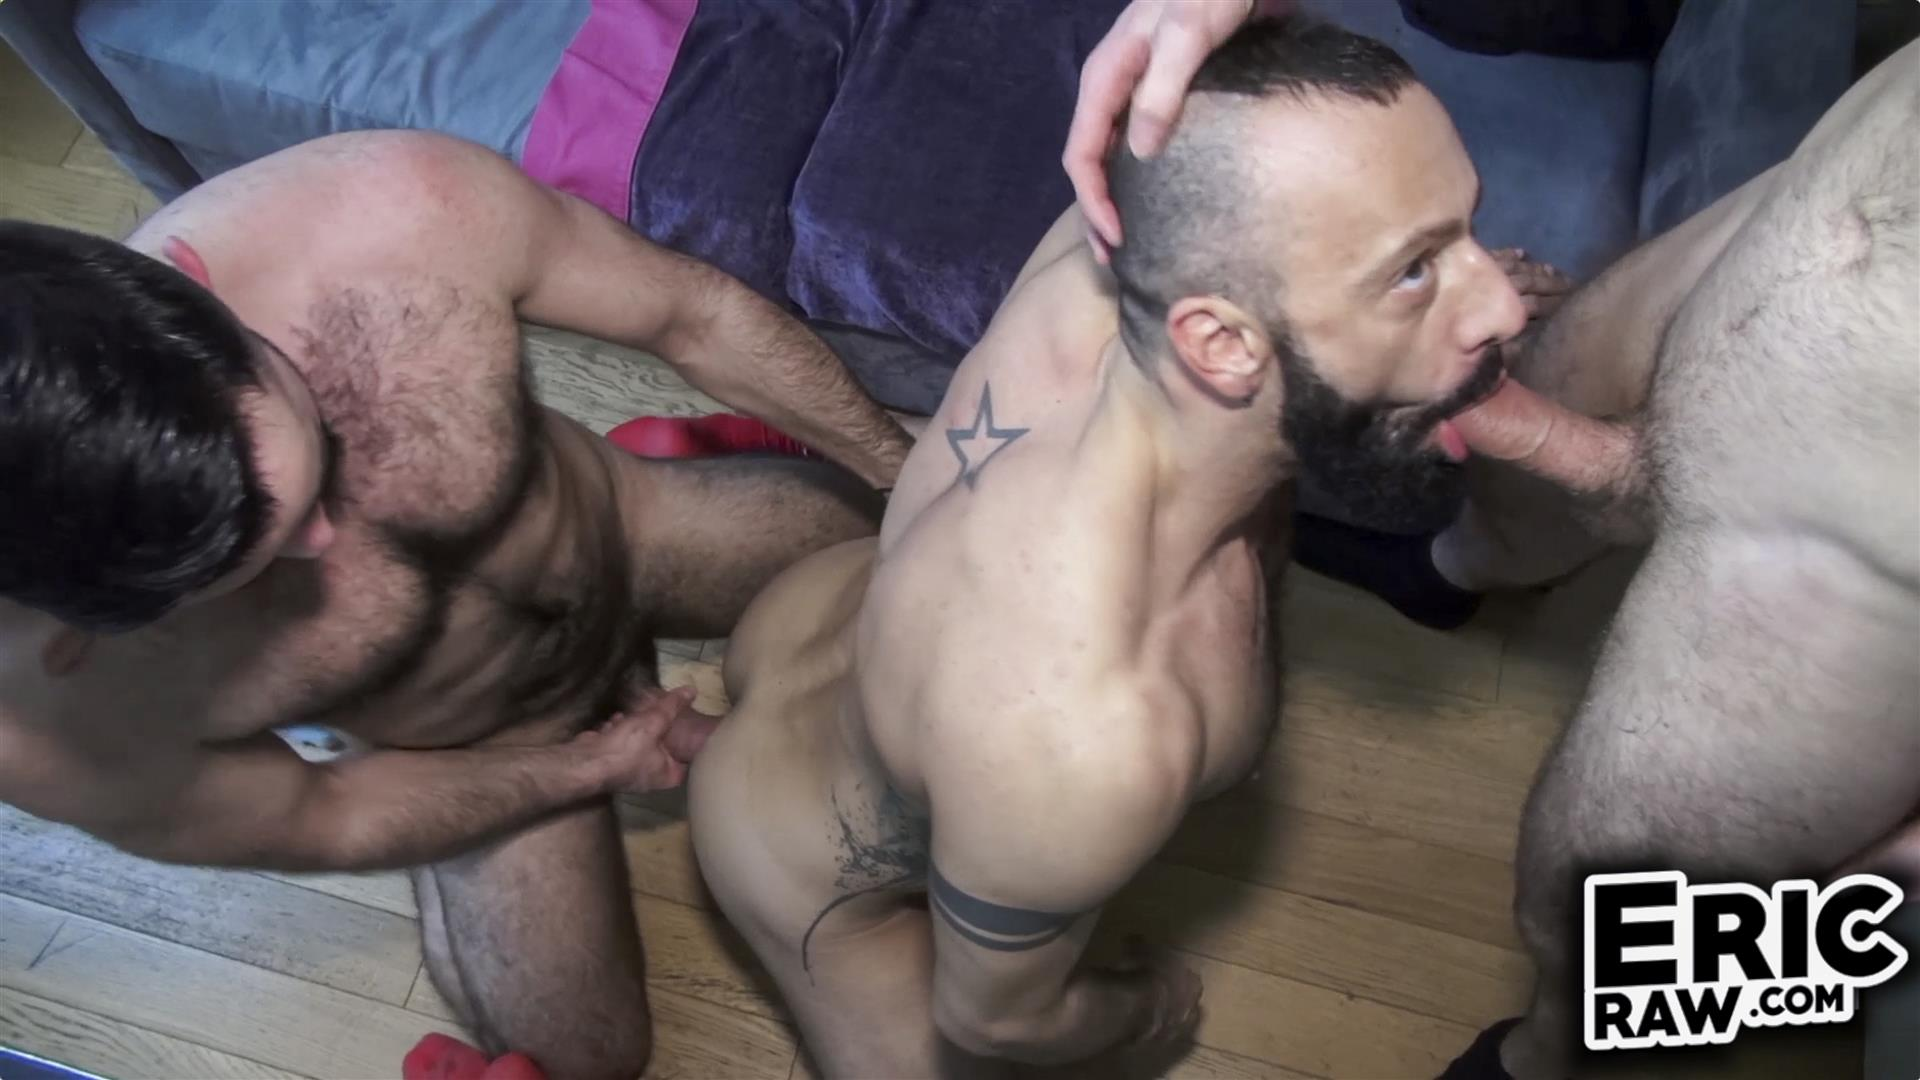 gay raw threesome porn